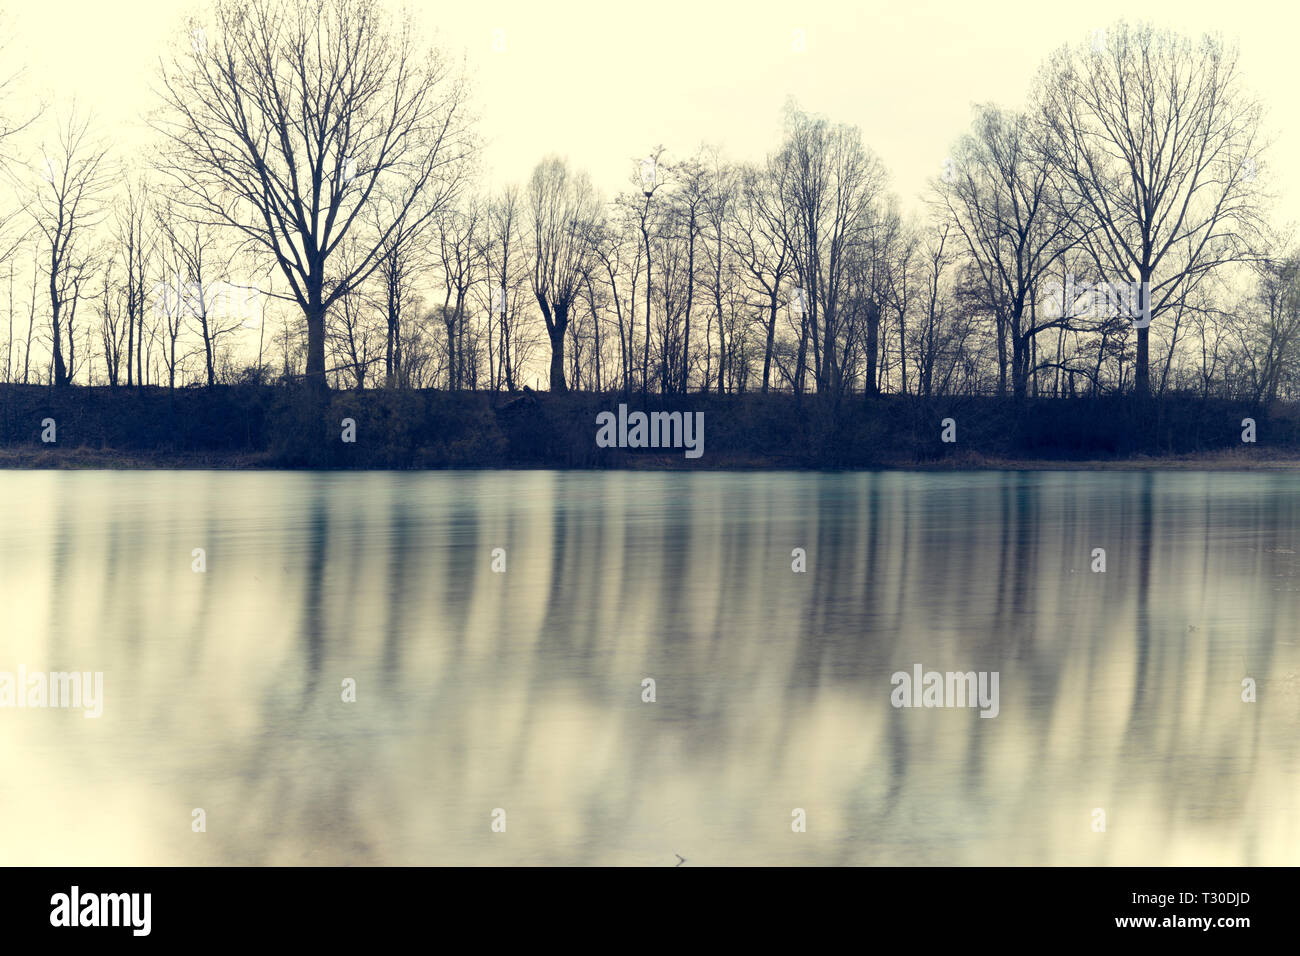 trees reflecting in water of Vöttinger lake in Germany - Stock Image